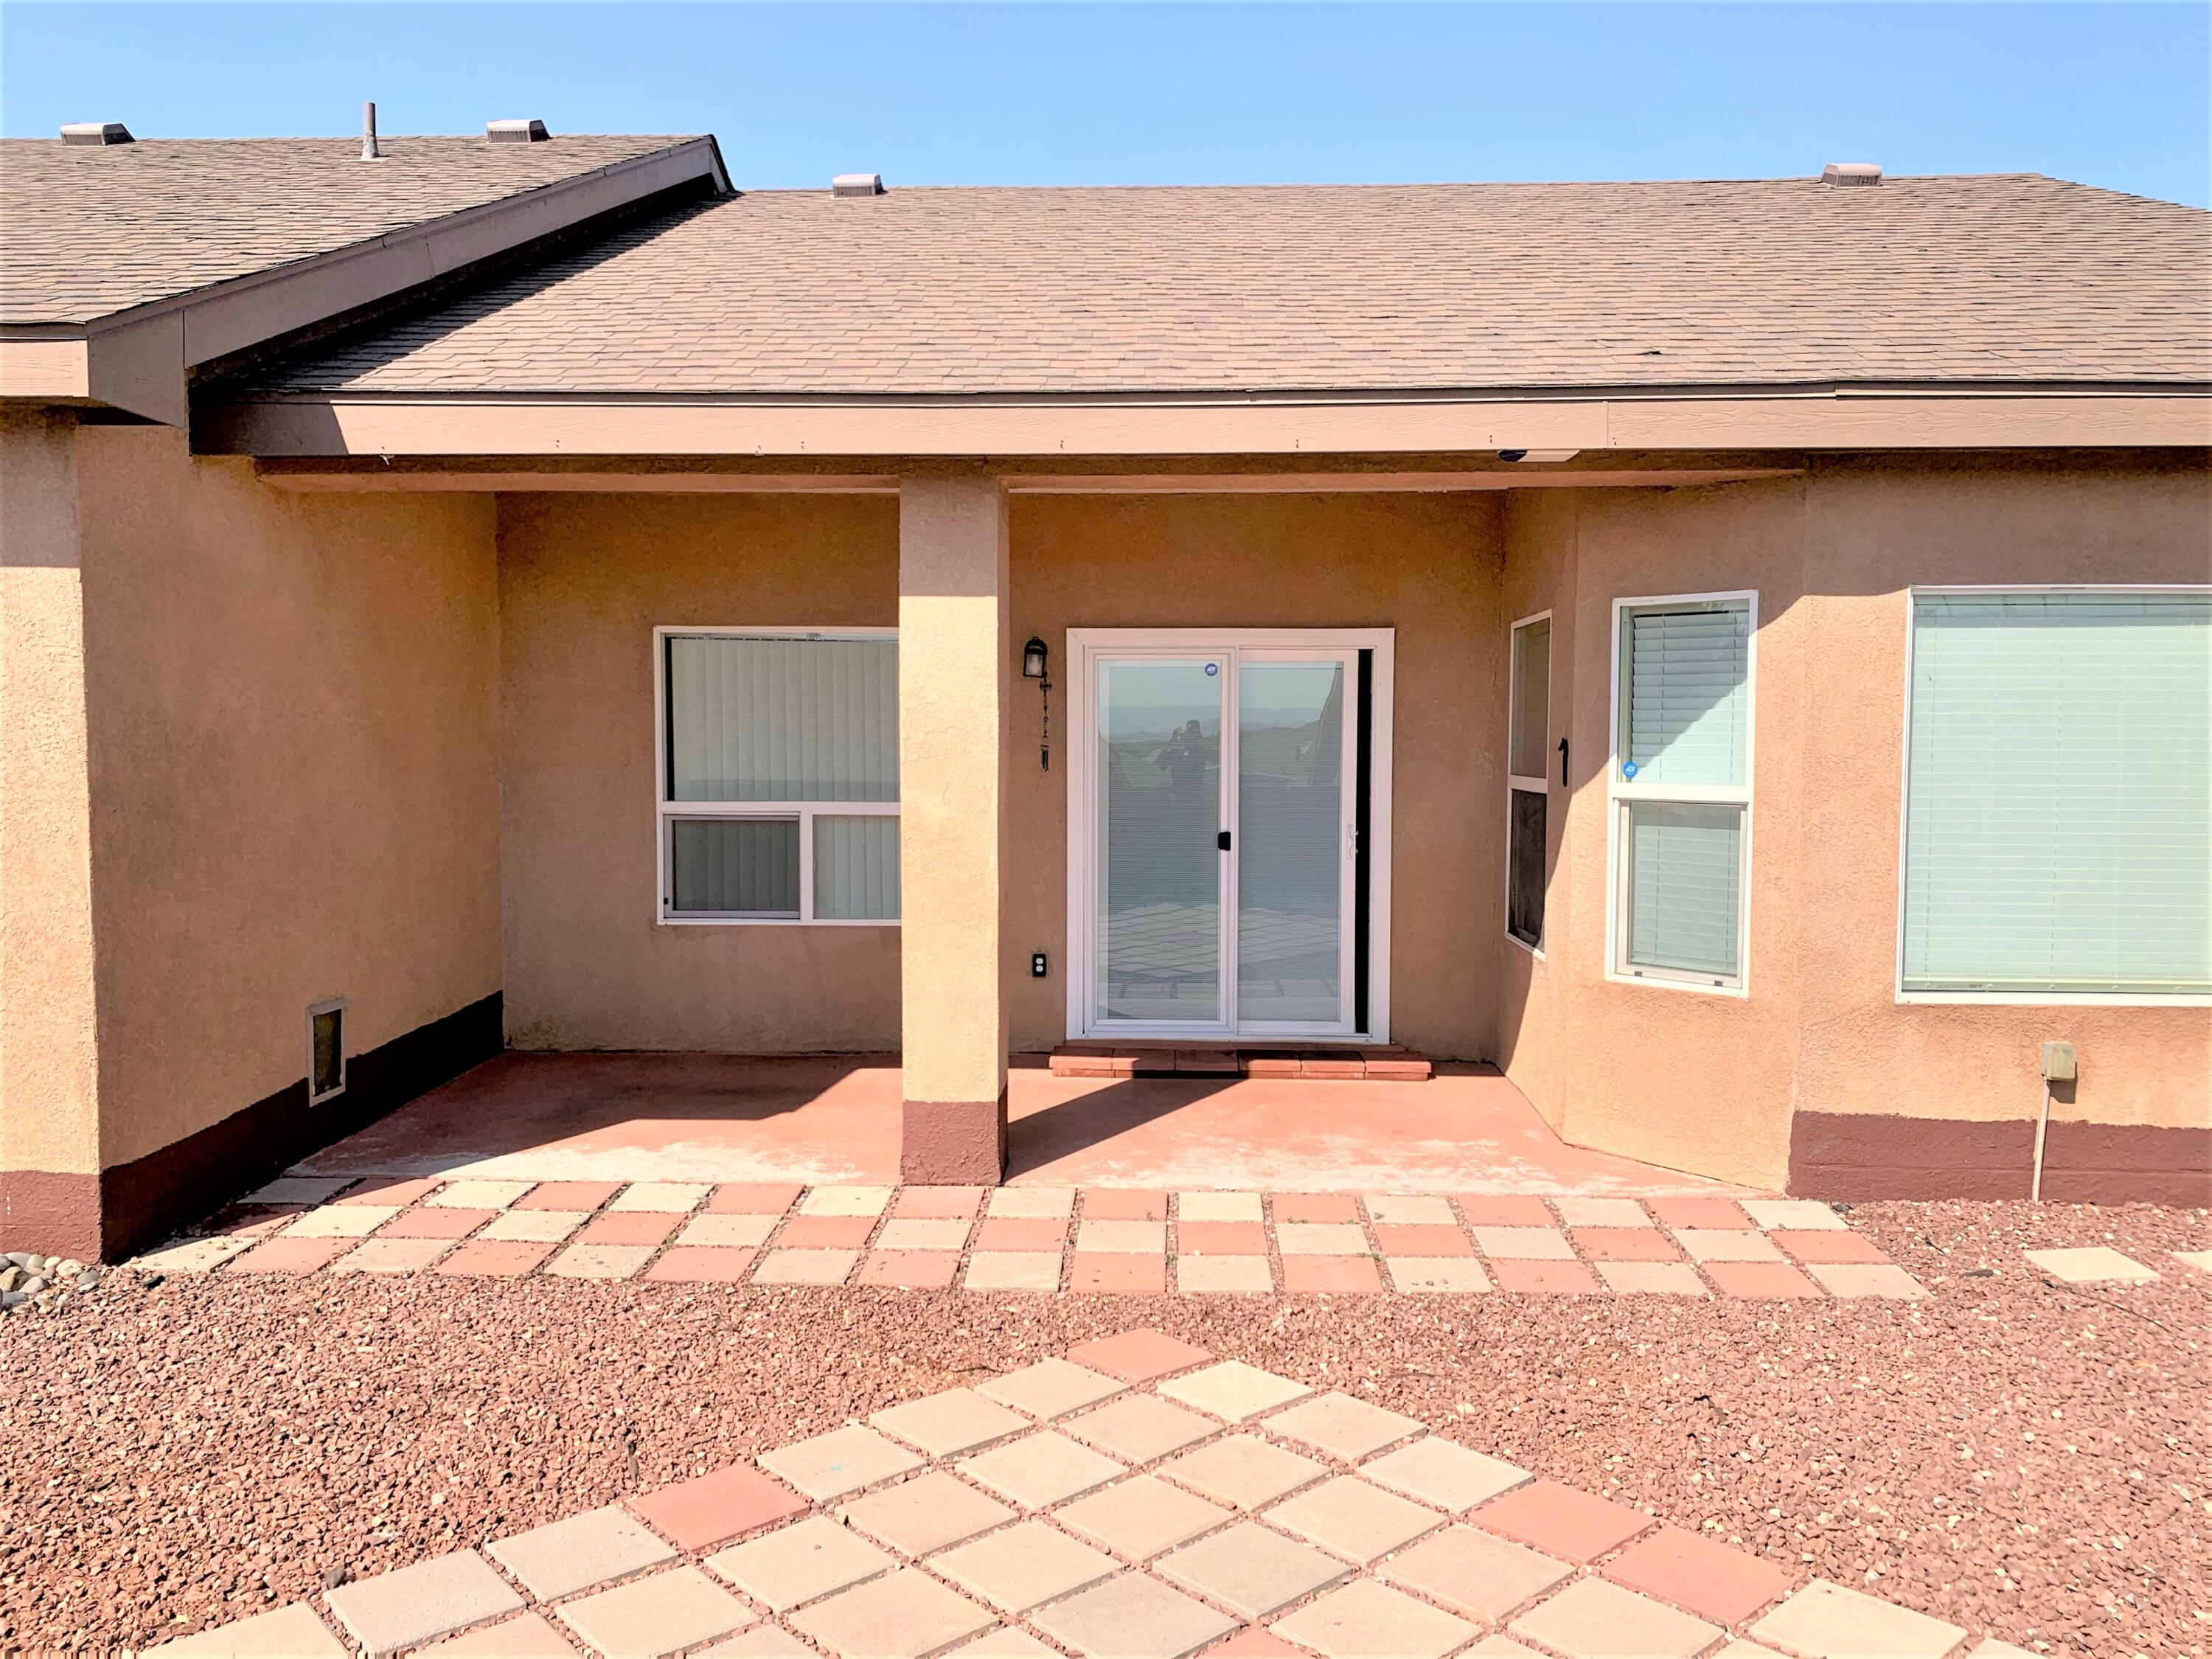 Large living room & formal Dining room. 4 bedrooms in the area for under 300K .Close to schools, shopping & HWY access.